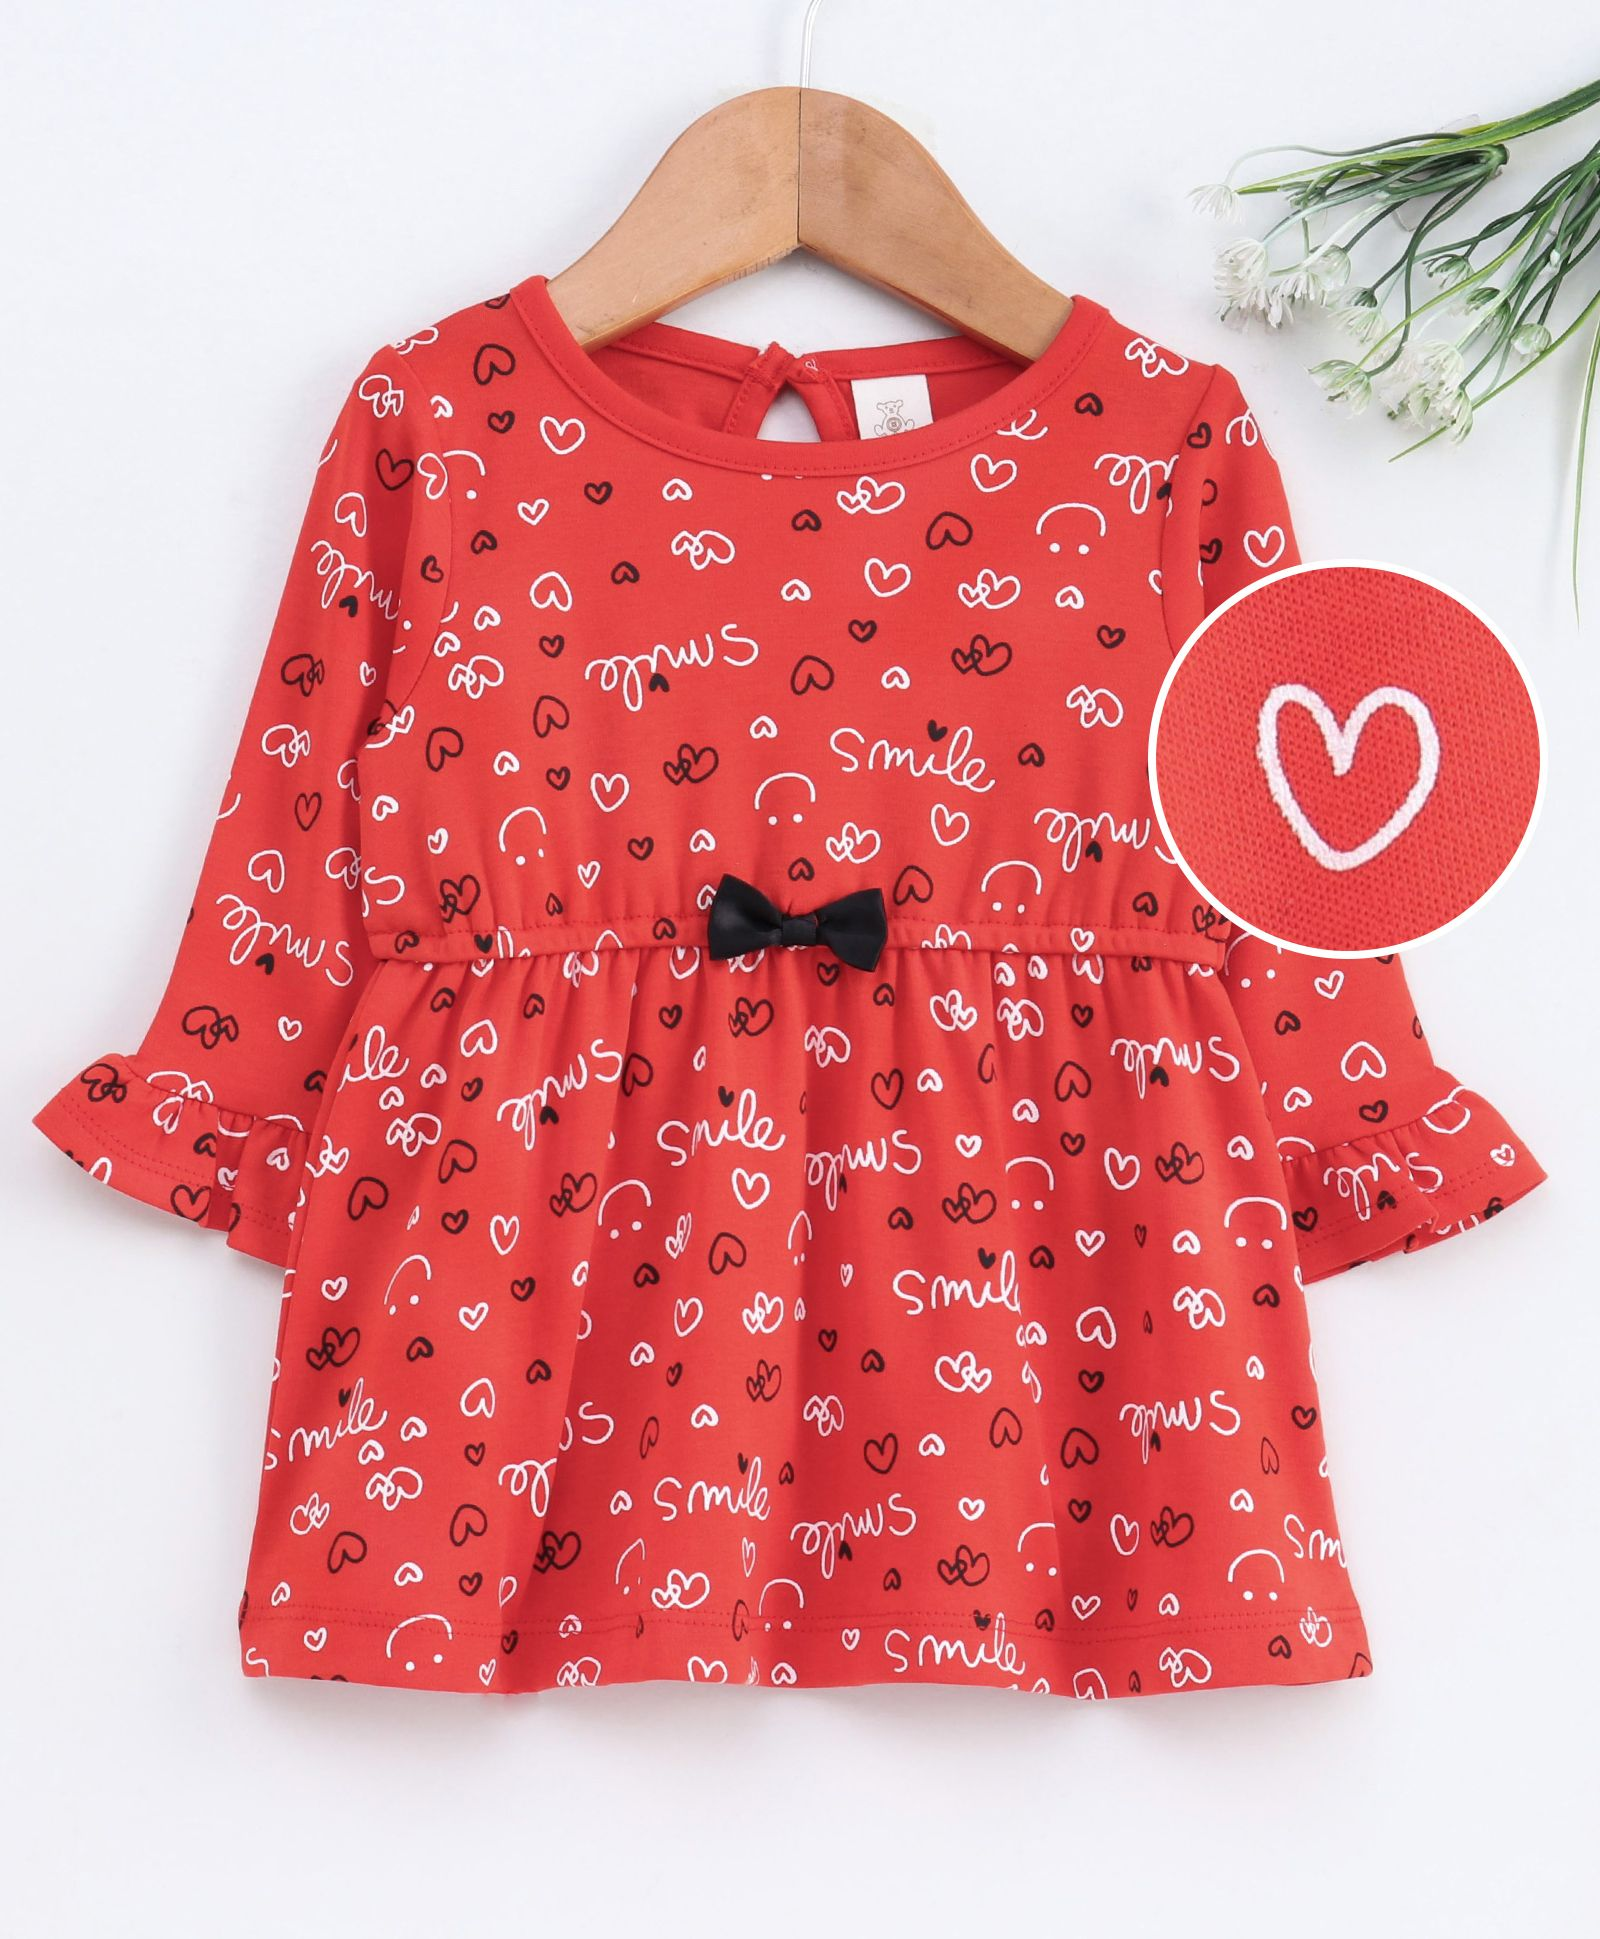 Buy Baby Naturelle & Me Full Sleeves Frock Hearts Print Dark Red for Girls  (3-6 Months) Online in India, Shop at FirstCry com - 2873178